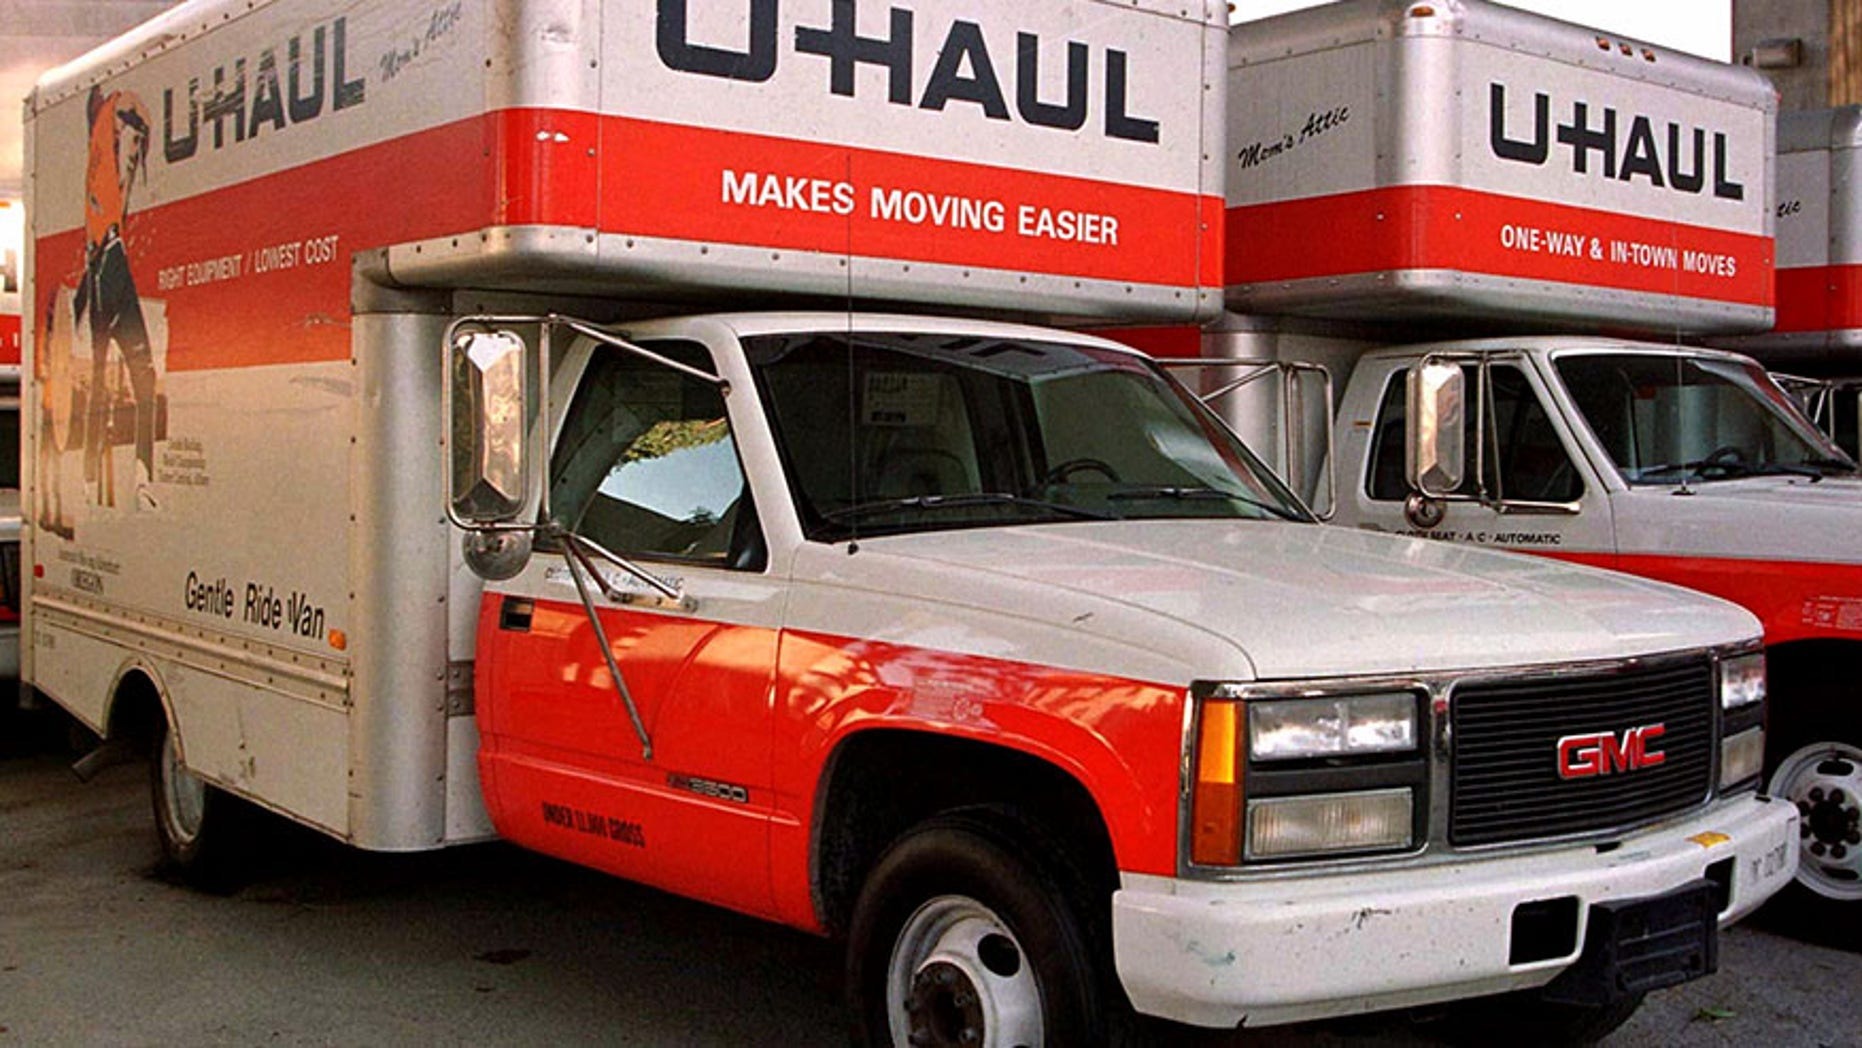 A search is underway for a similar U-Haul truck after a man found with gunshot wounds on Interstate 95 in New York.